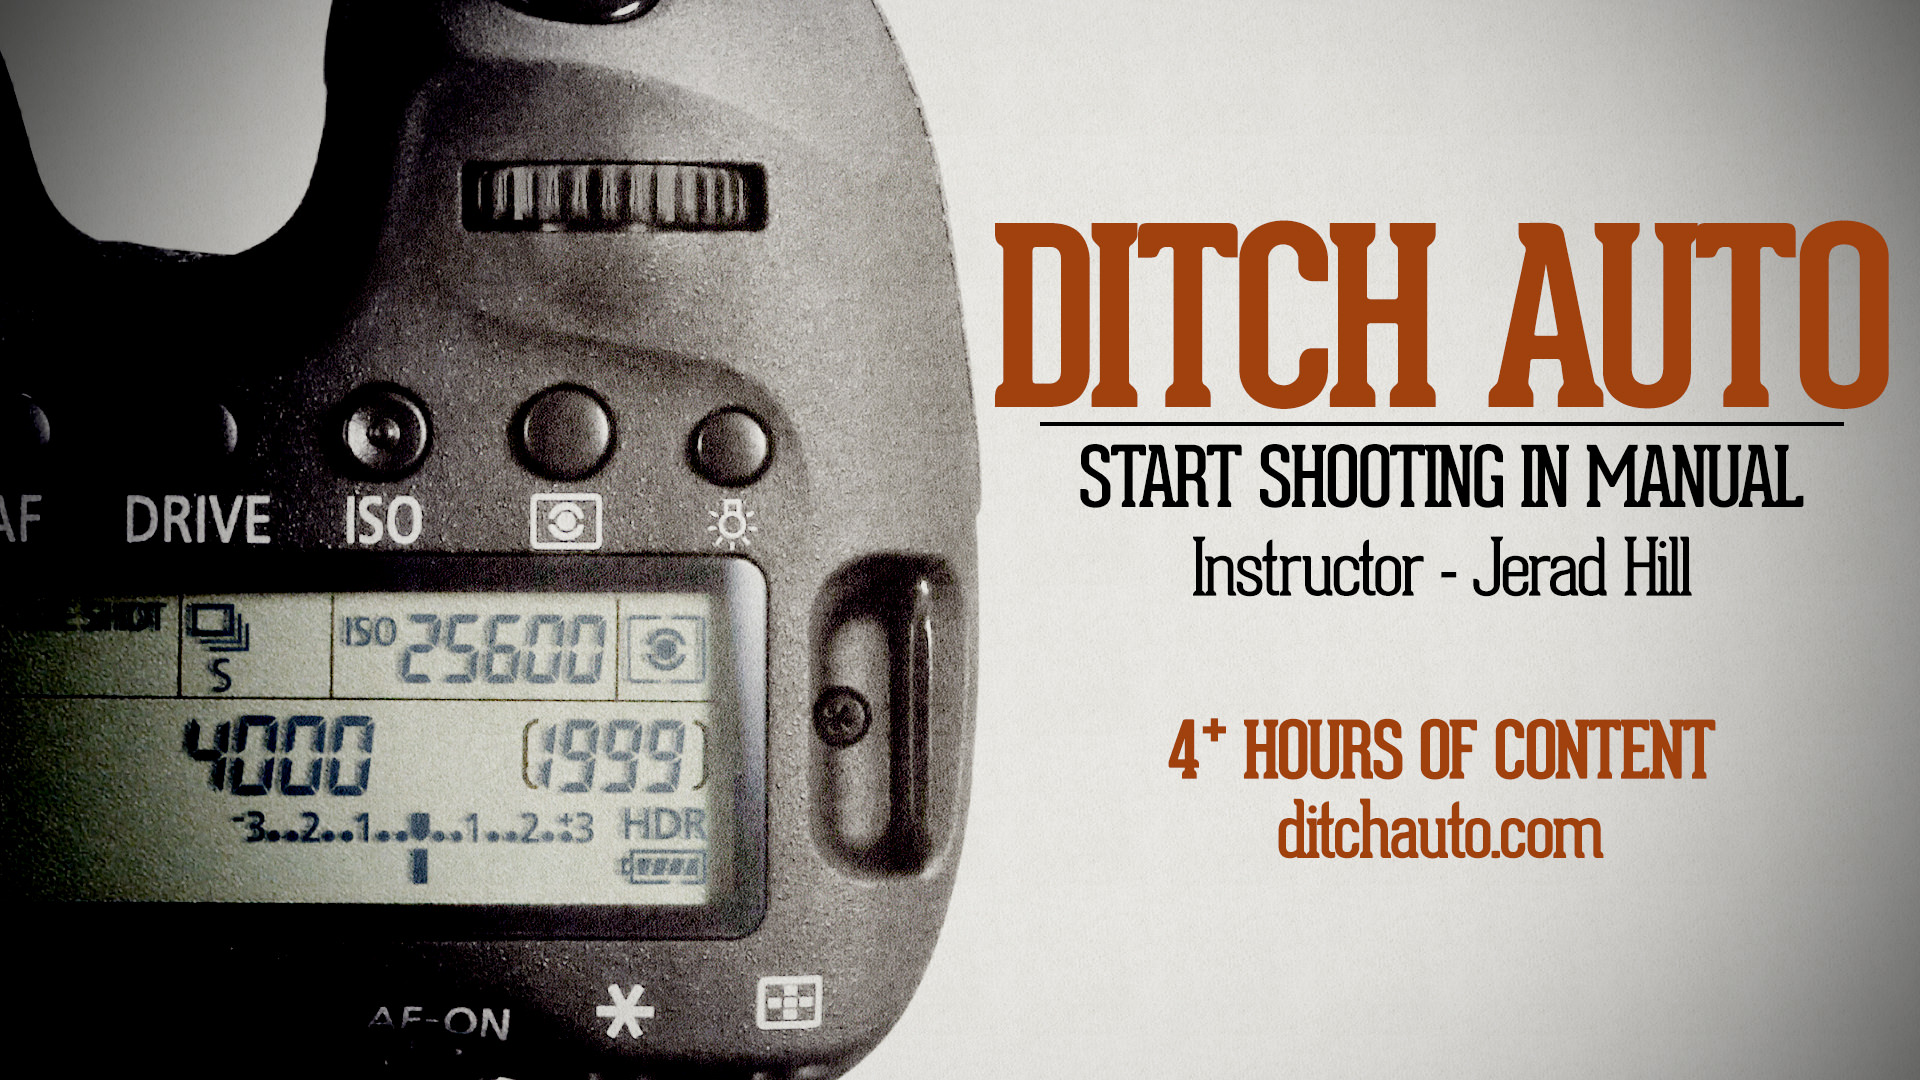 Ditch Auto - Start Shooting in Manual Course